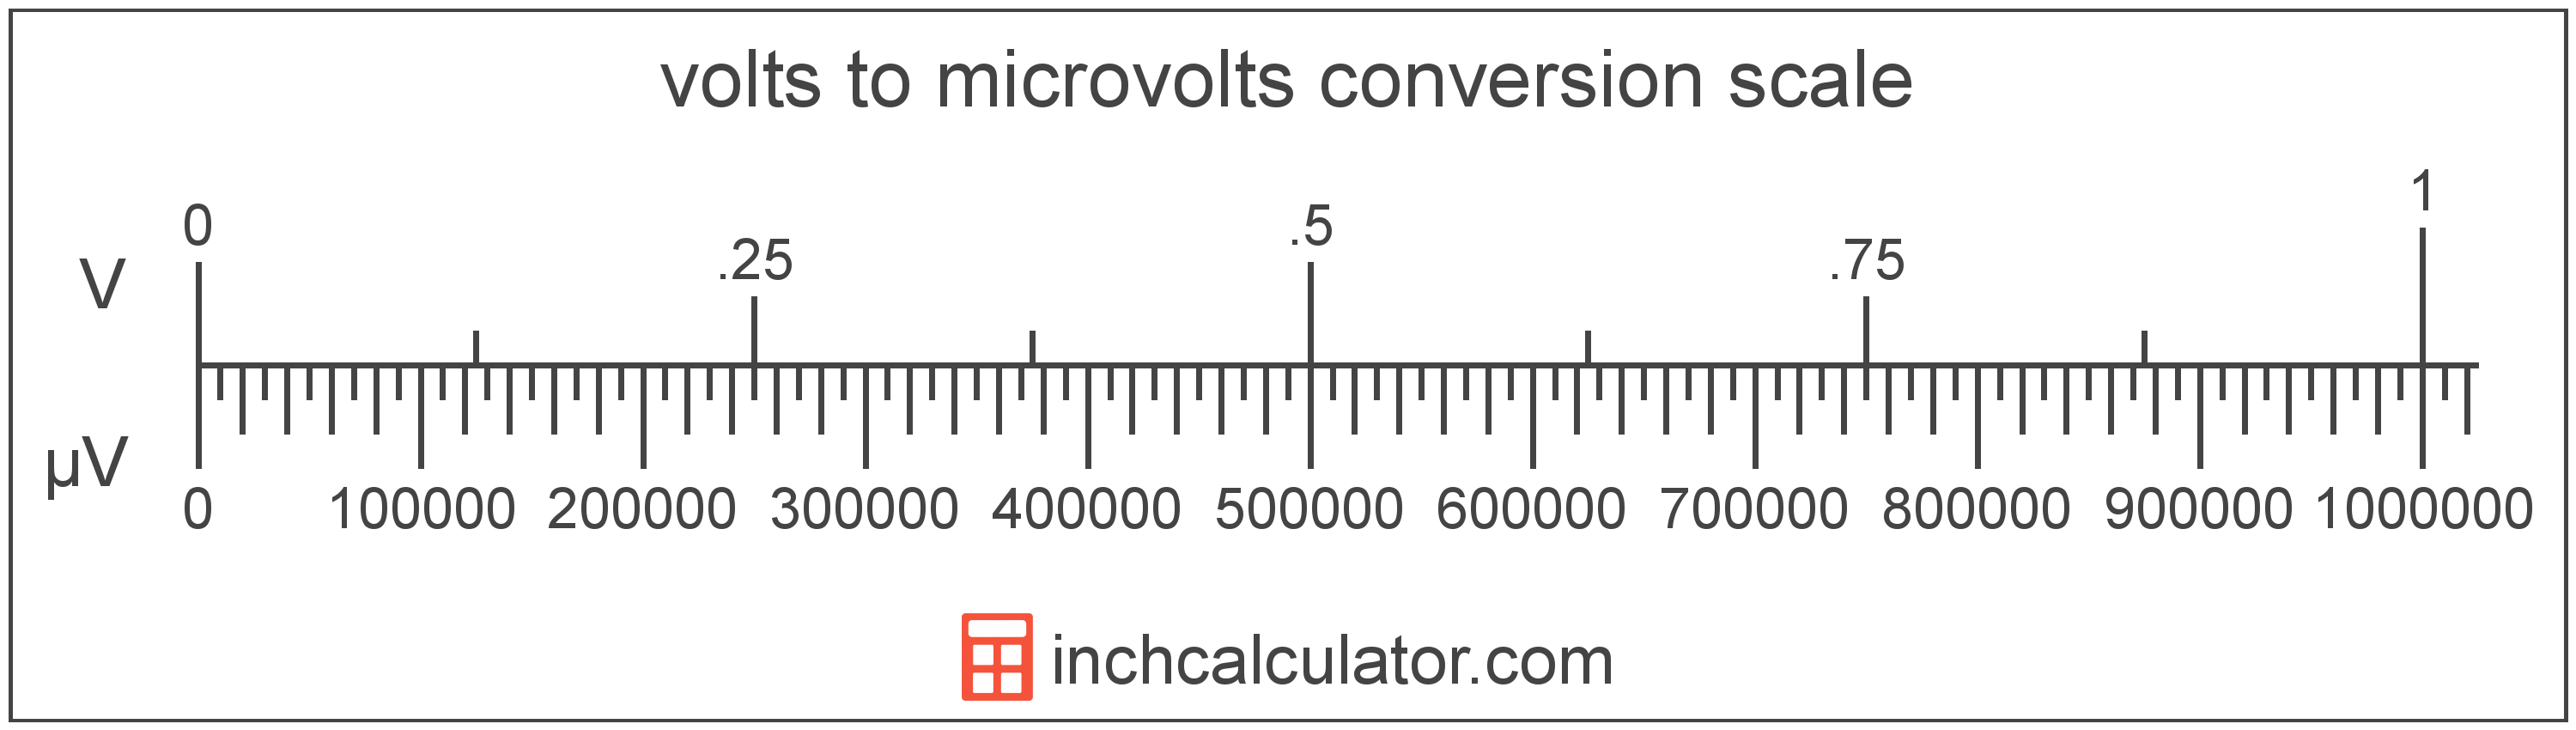 conversion scale showing volts and equivalent microvolts voltage values